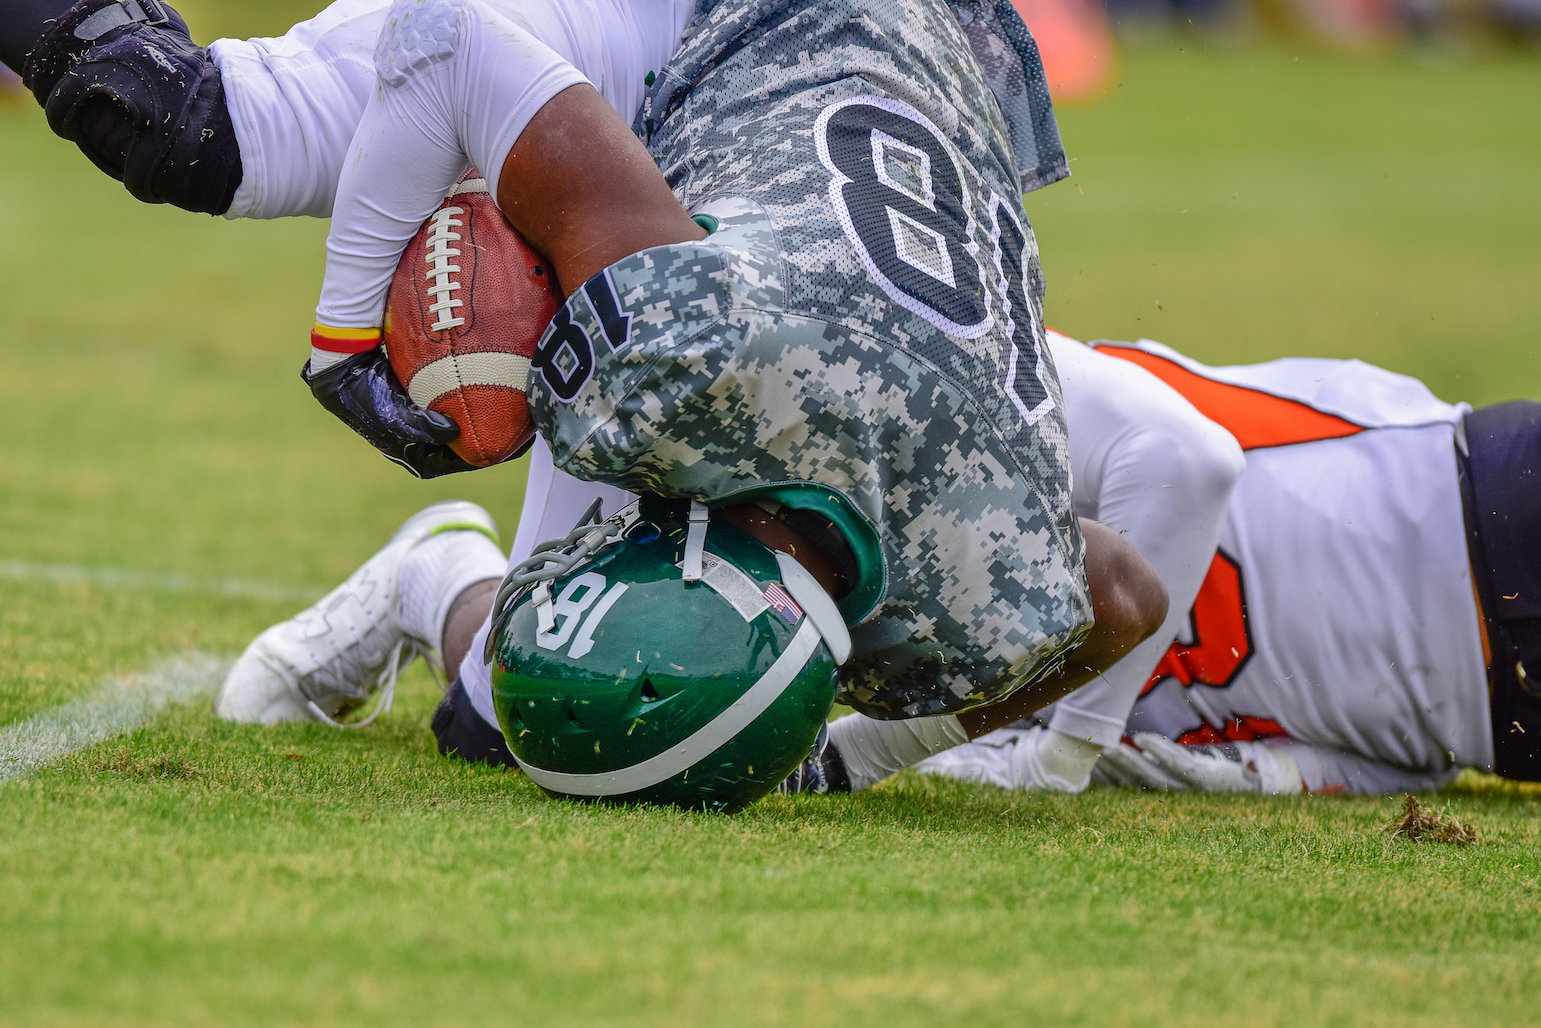 Playing high school football did not cause abnormal cognitive impairment or depression later in life, according to a new study.